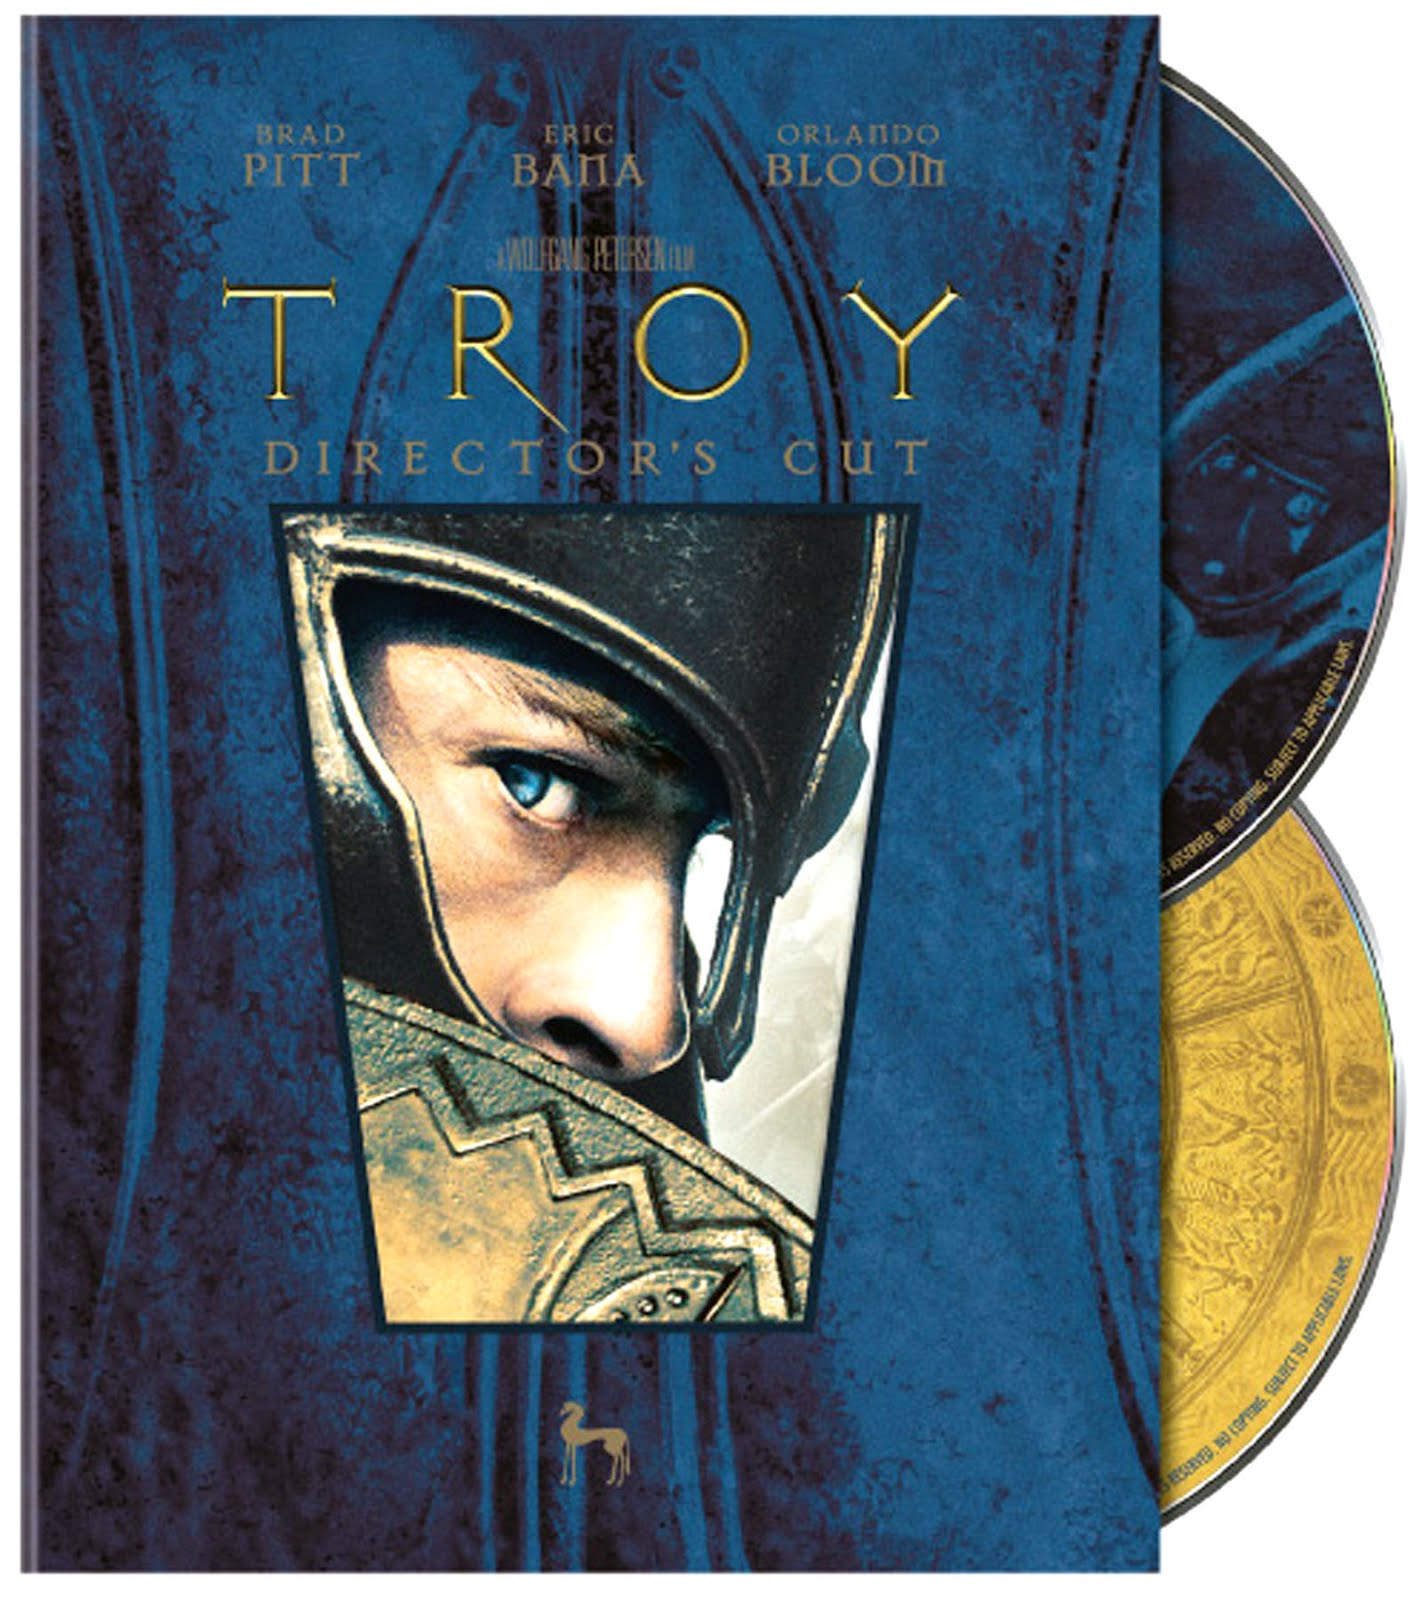 Troy Director's Cut Dvd Case